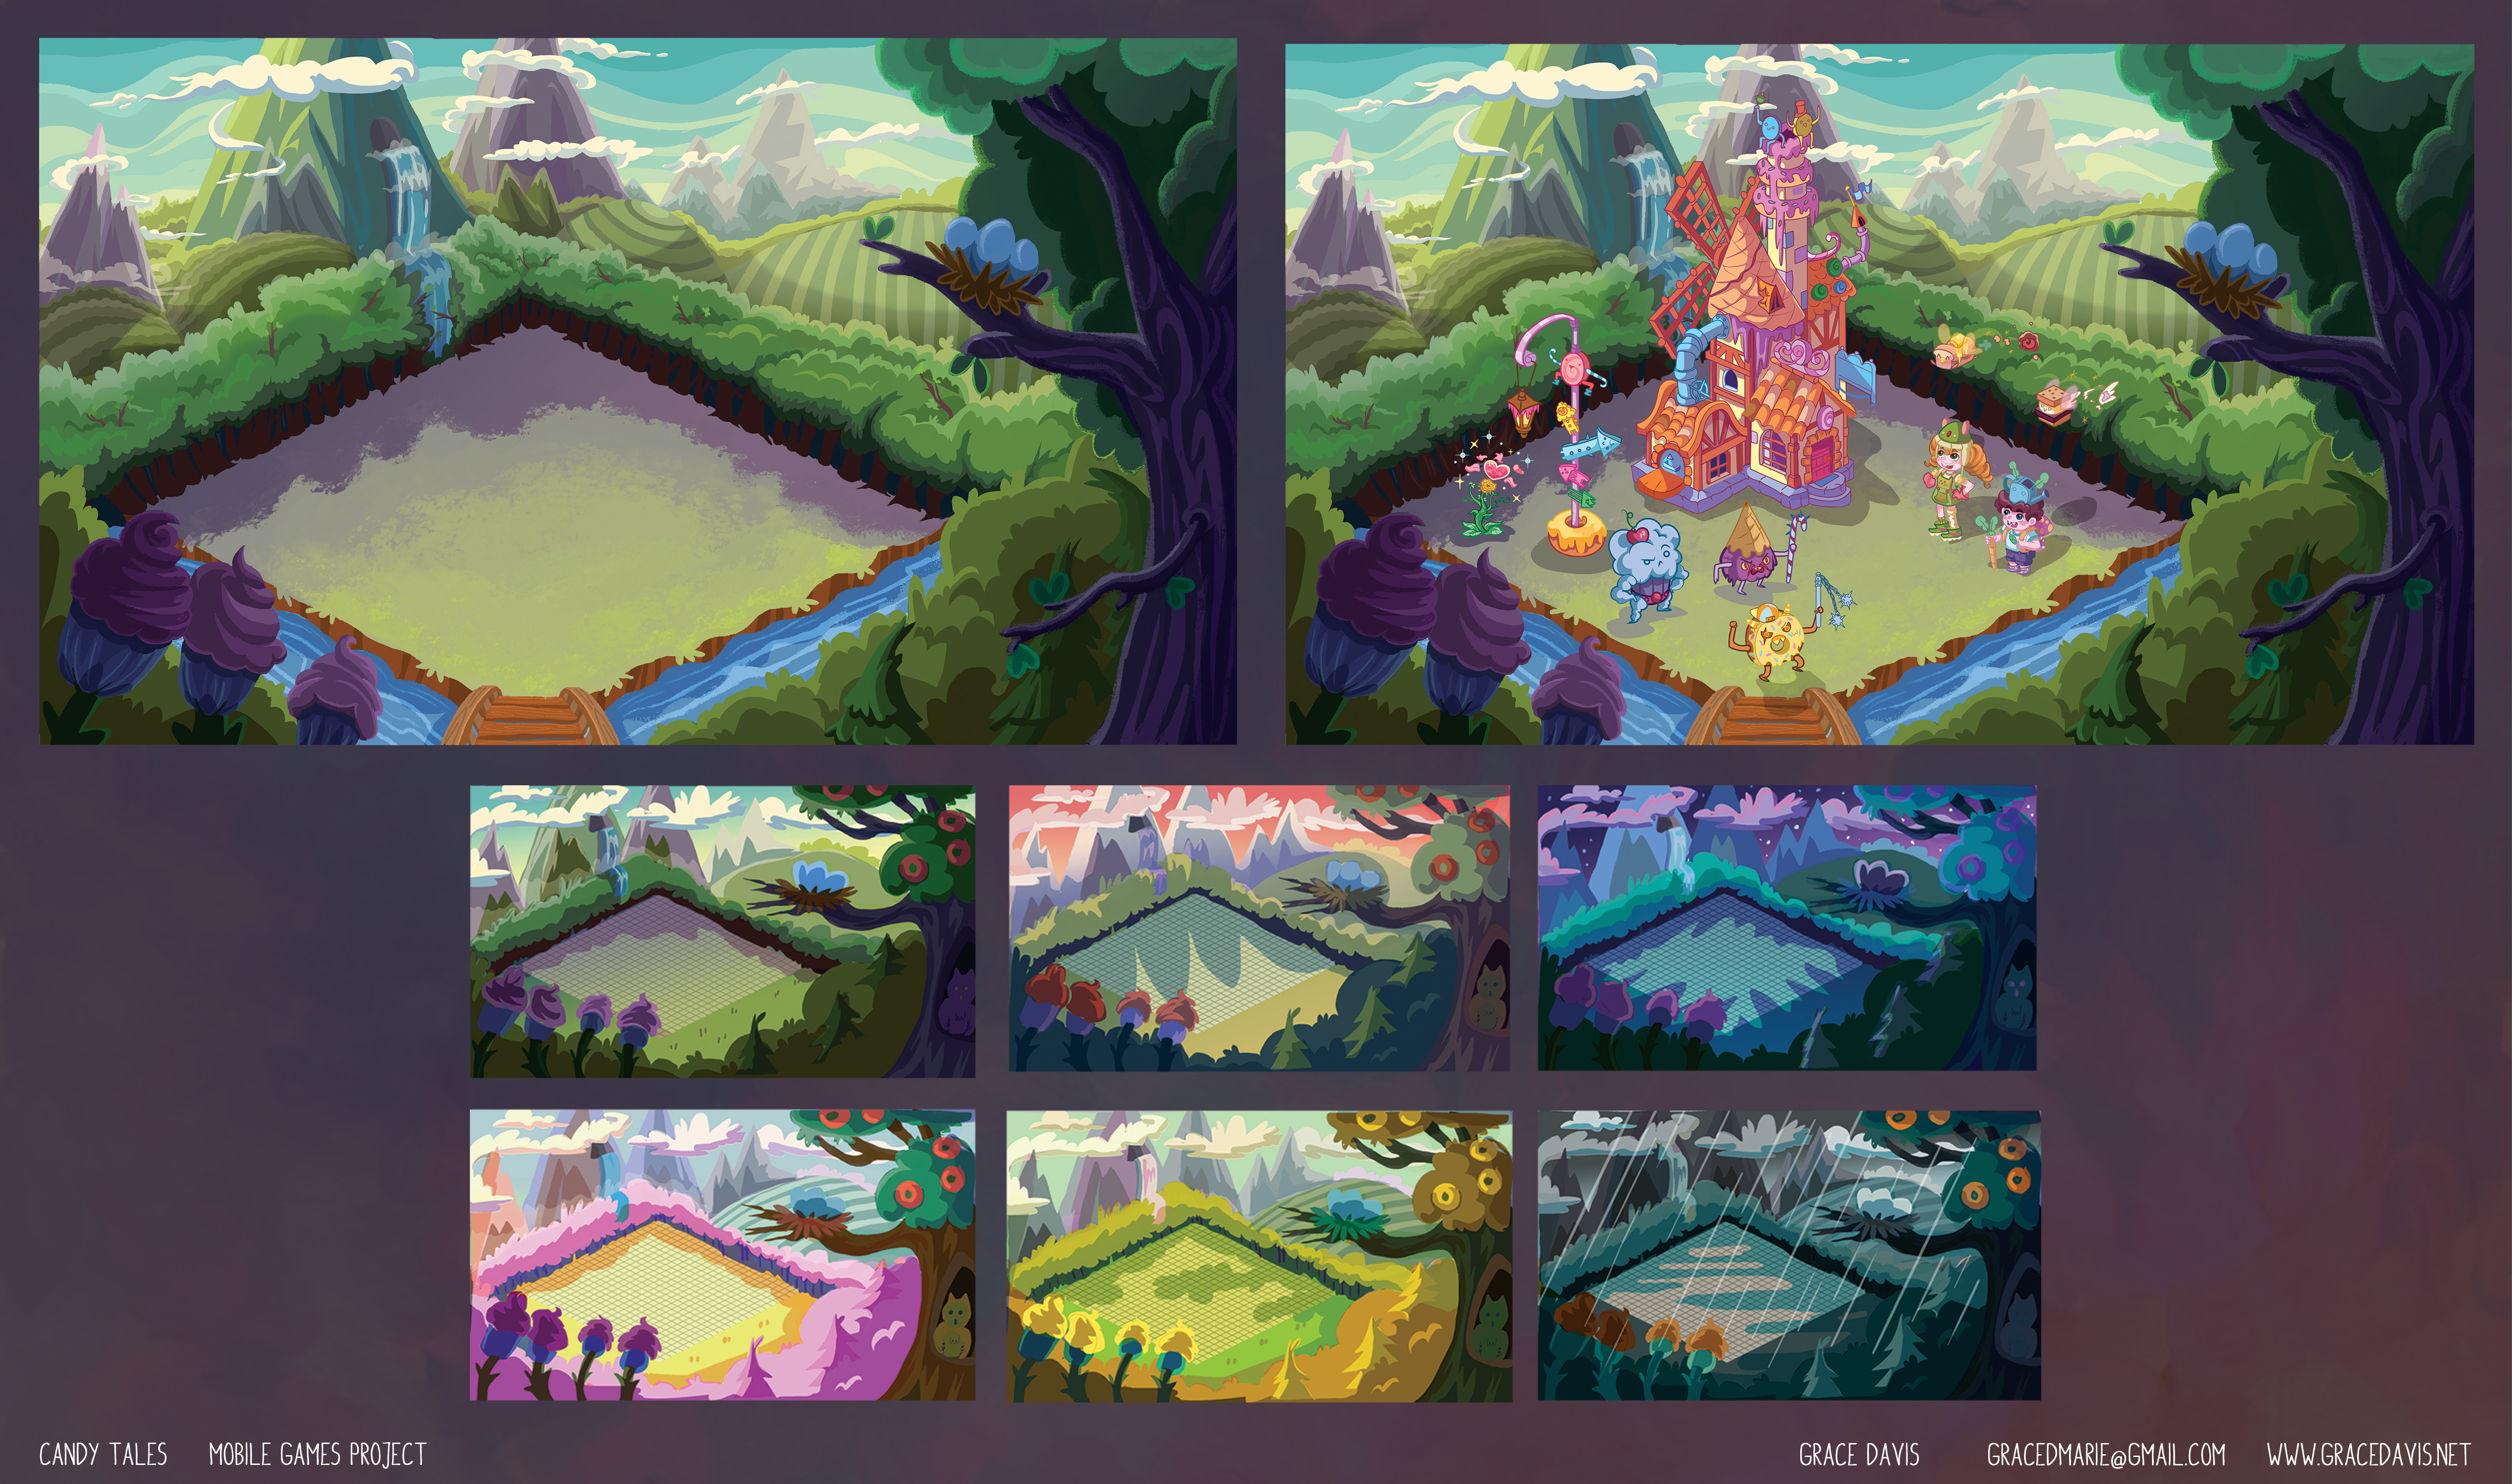 Mobile Game Color Studies